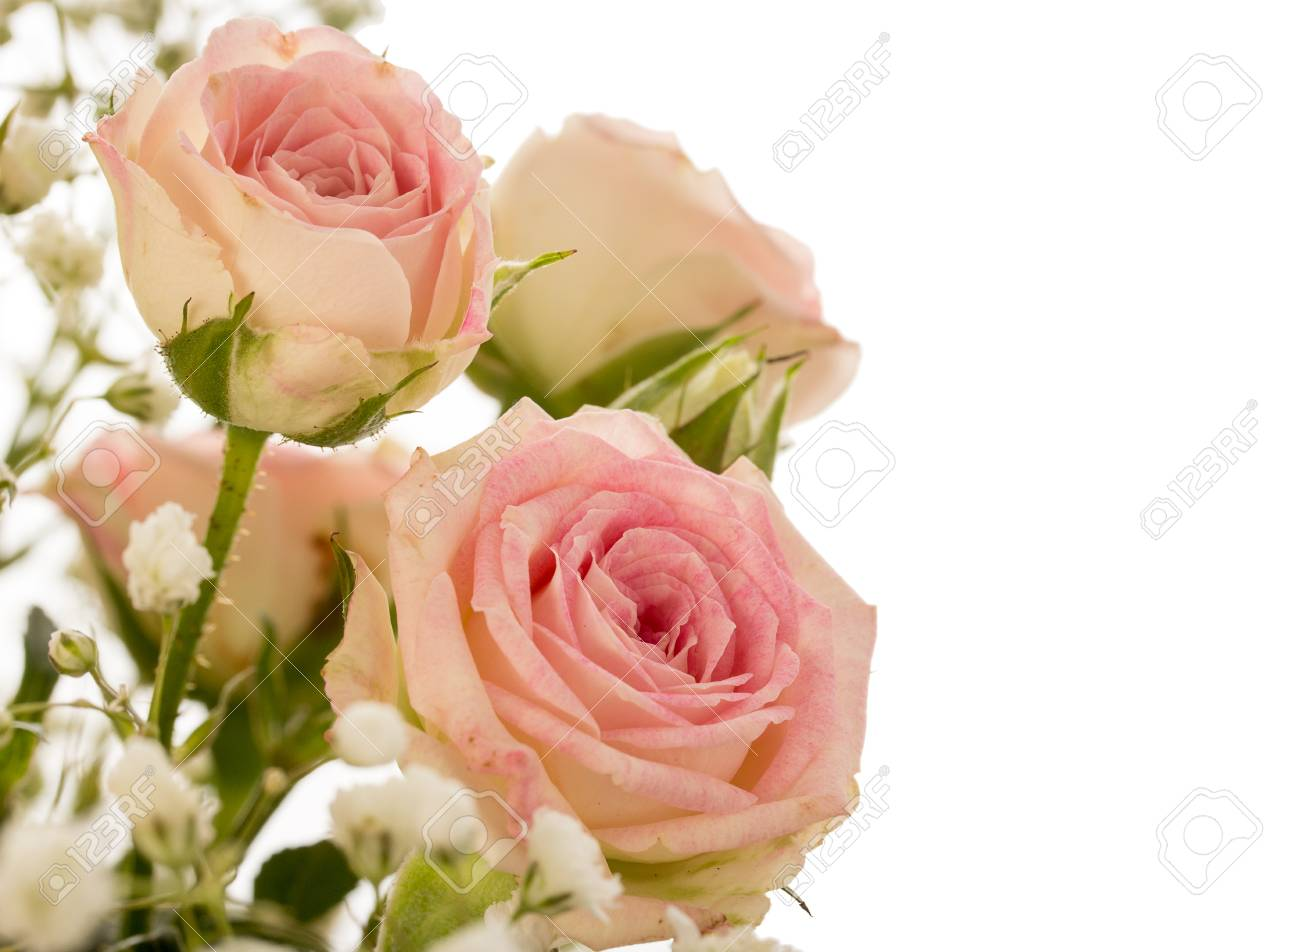 Bouquet Of Small Decorative Pink Roses With Small White Flowers